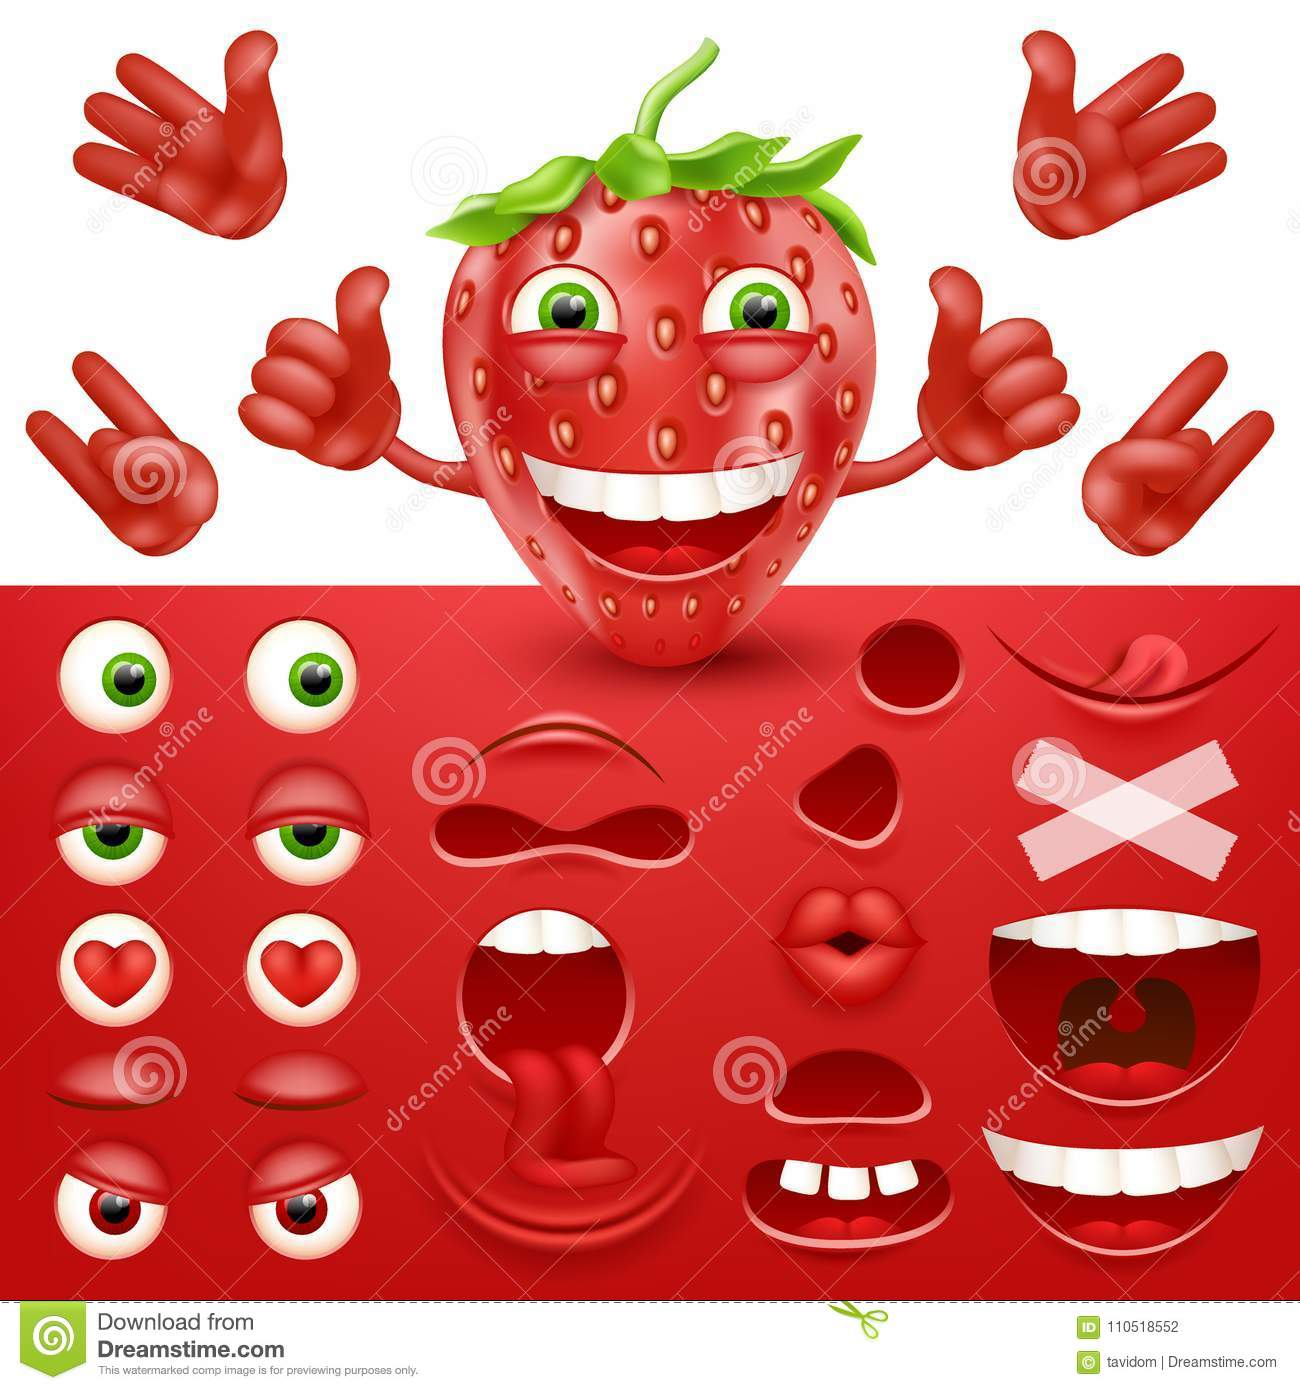 Cartoon Strawberry 3d Smiley Face Vector Character Creation